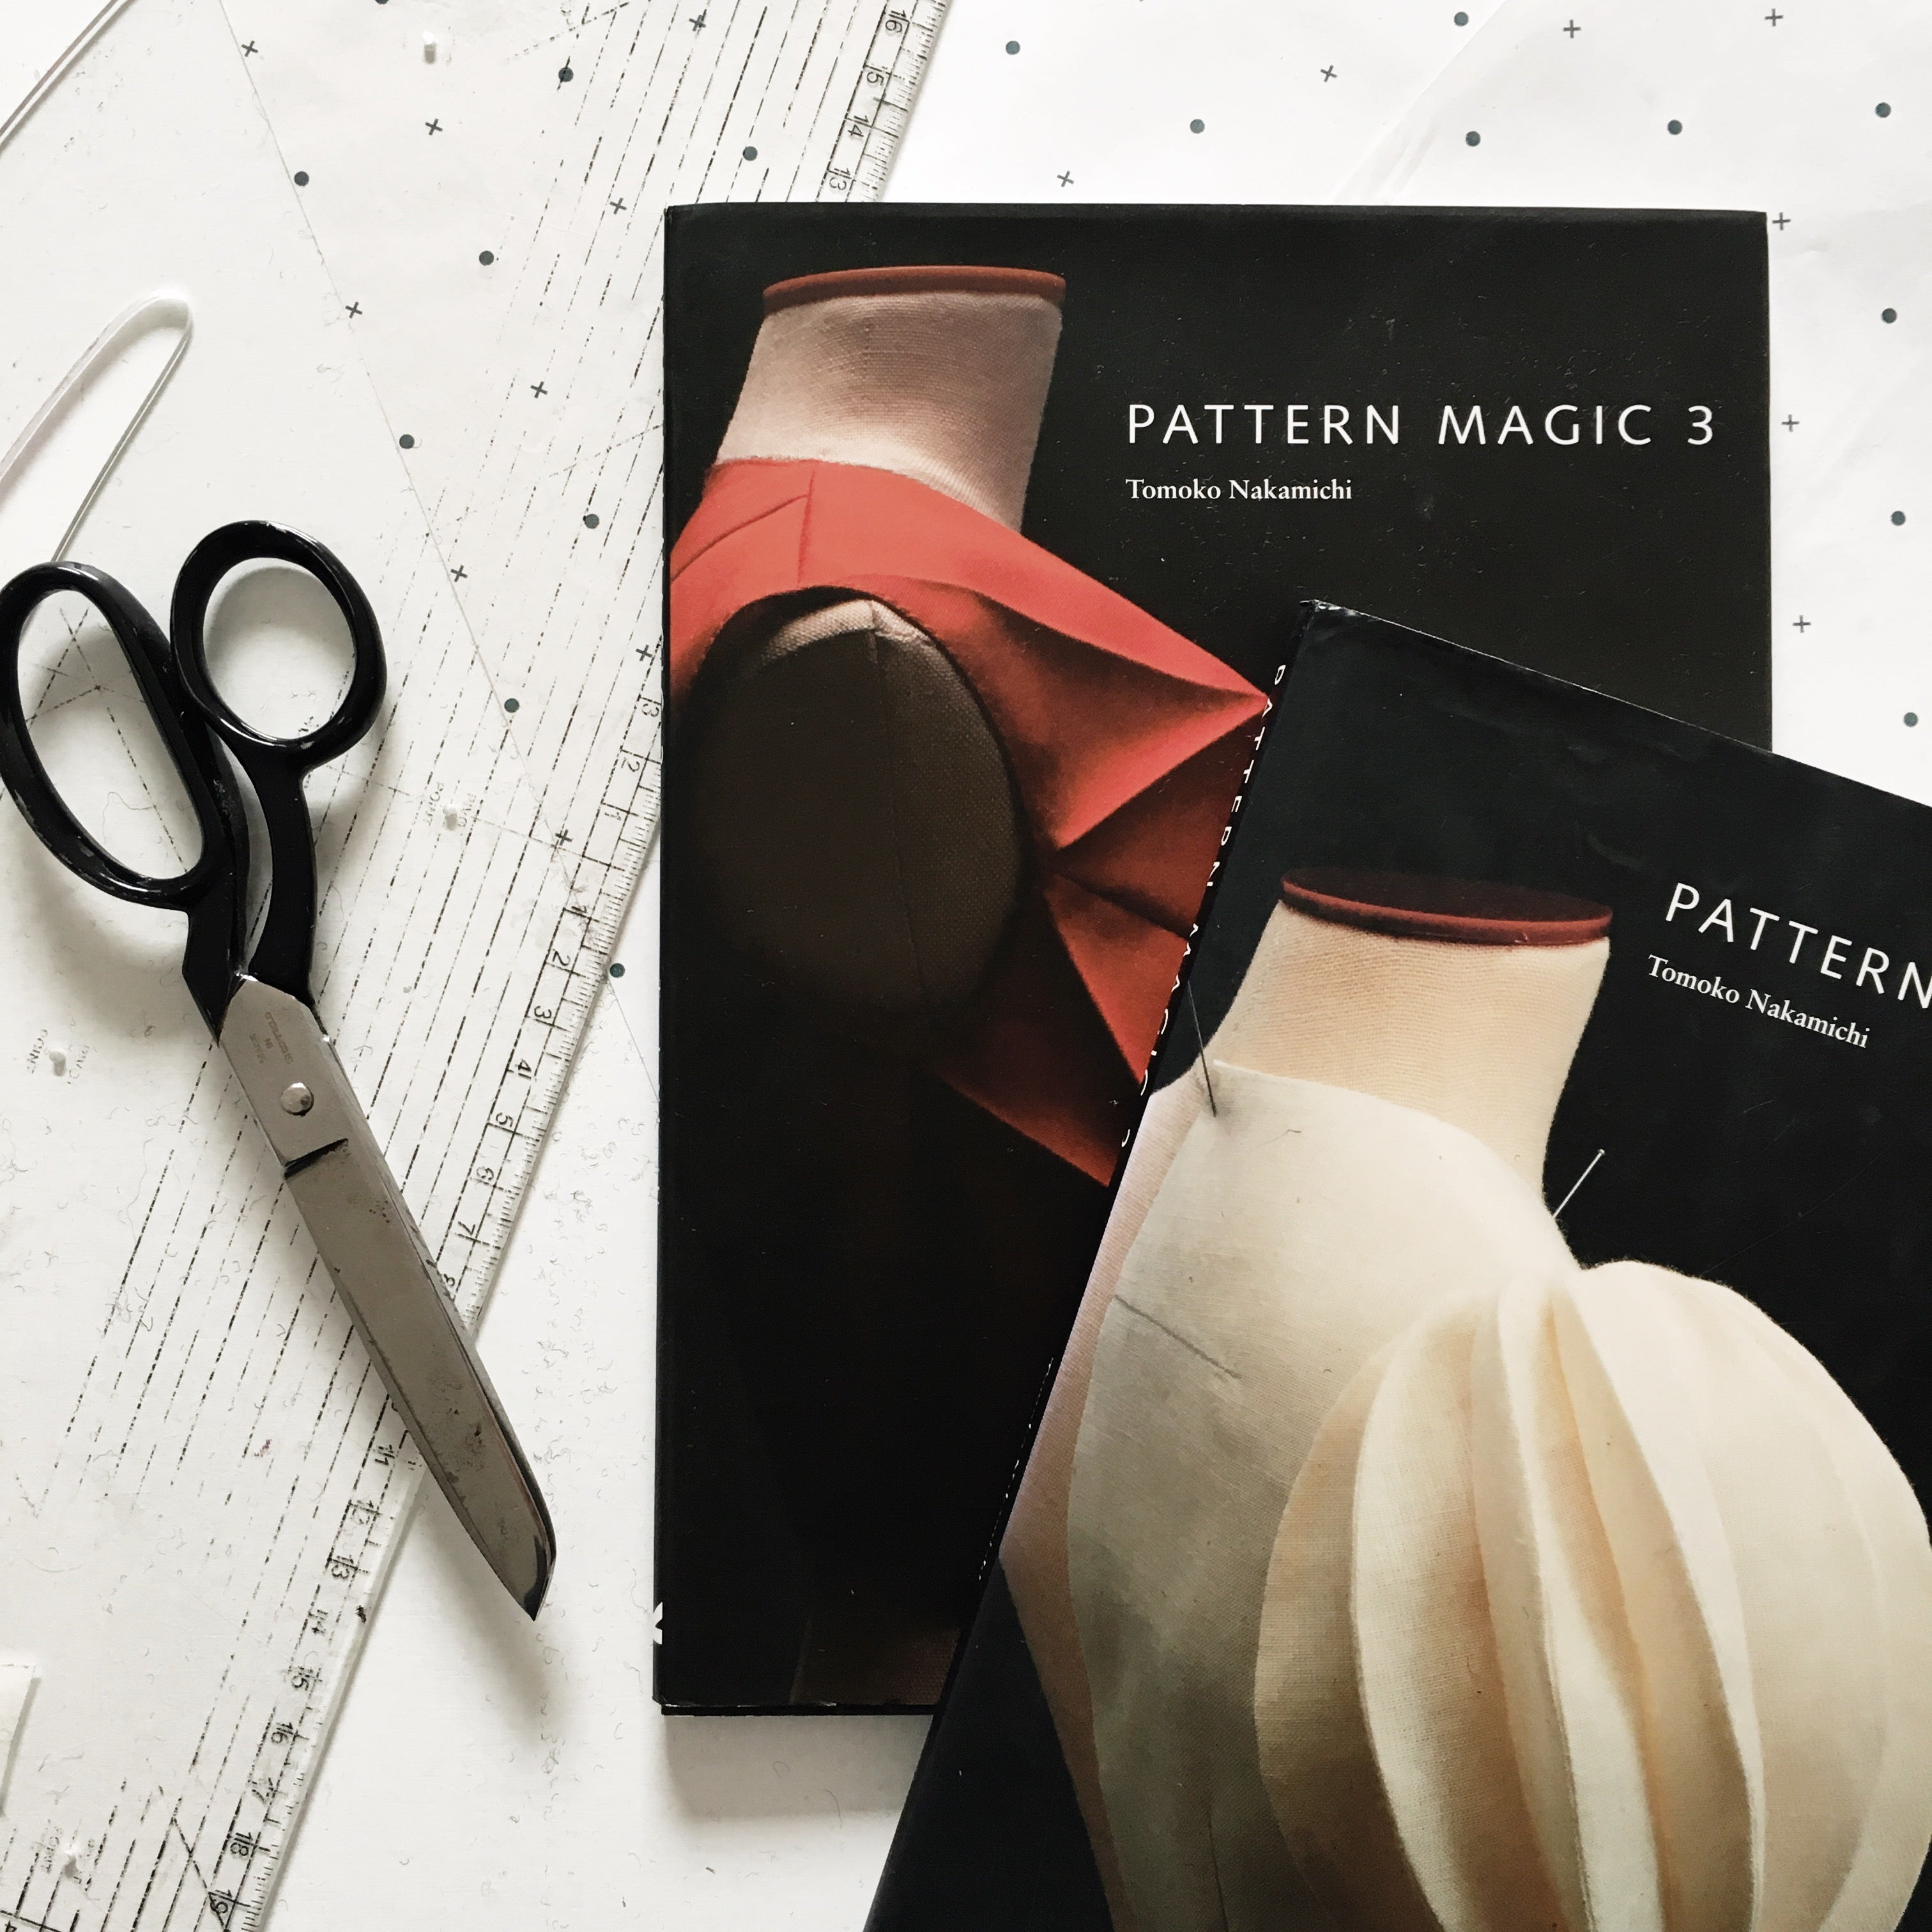 Japanese pattern cutting books and equipment